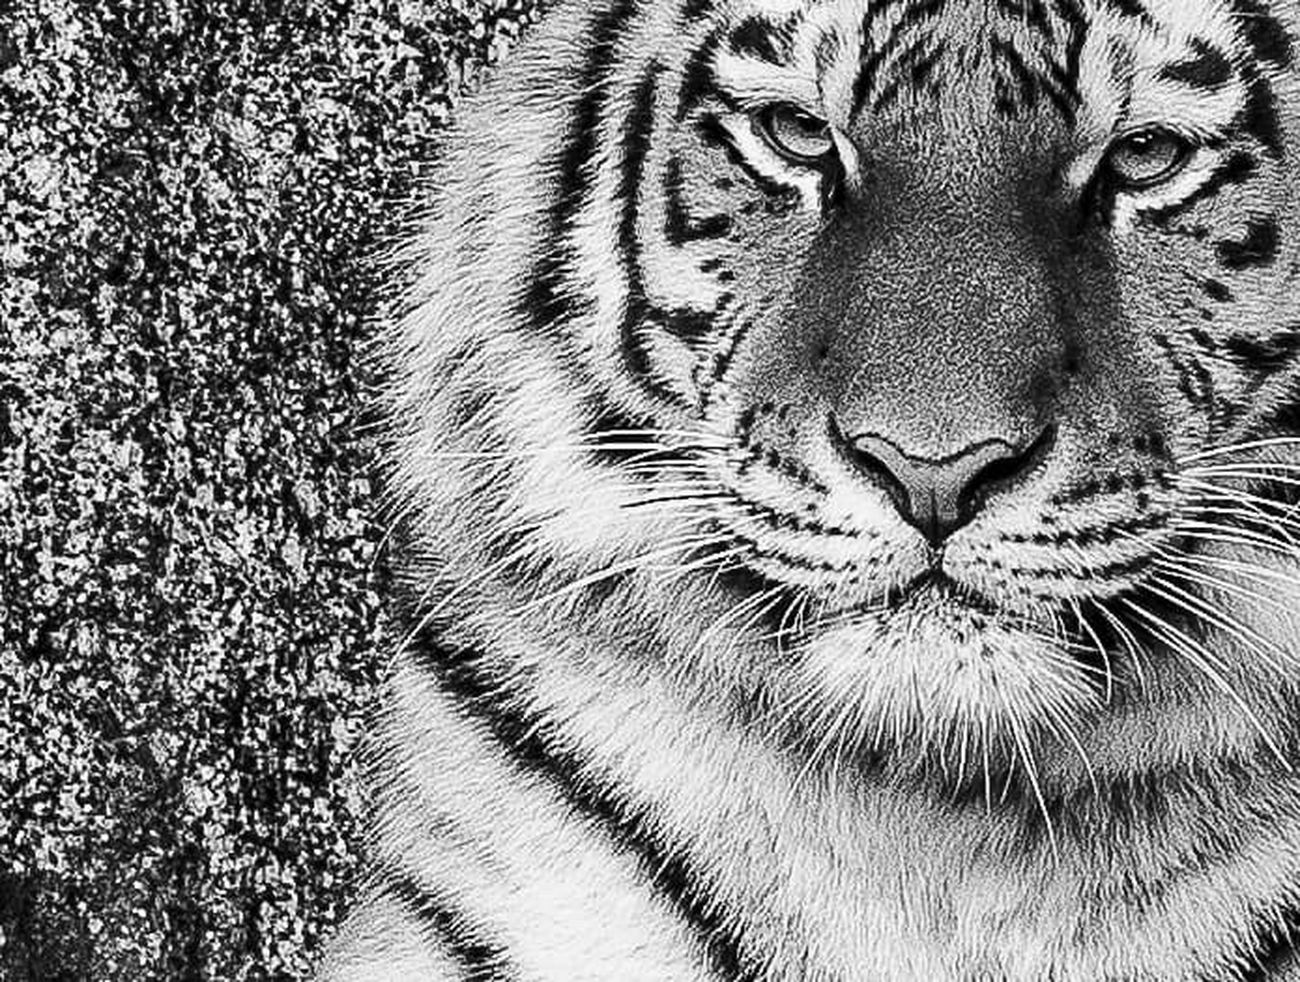 Animal Themes Tiger Close-up Portrait Black & White No People Monochrome Photography Looking At Camera Zoo Animals